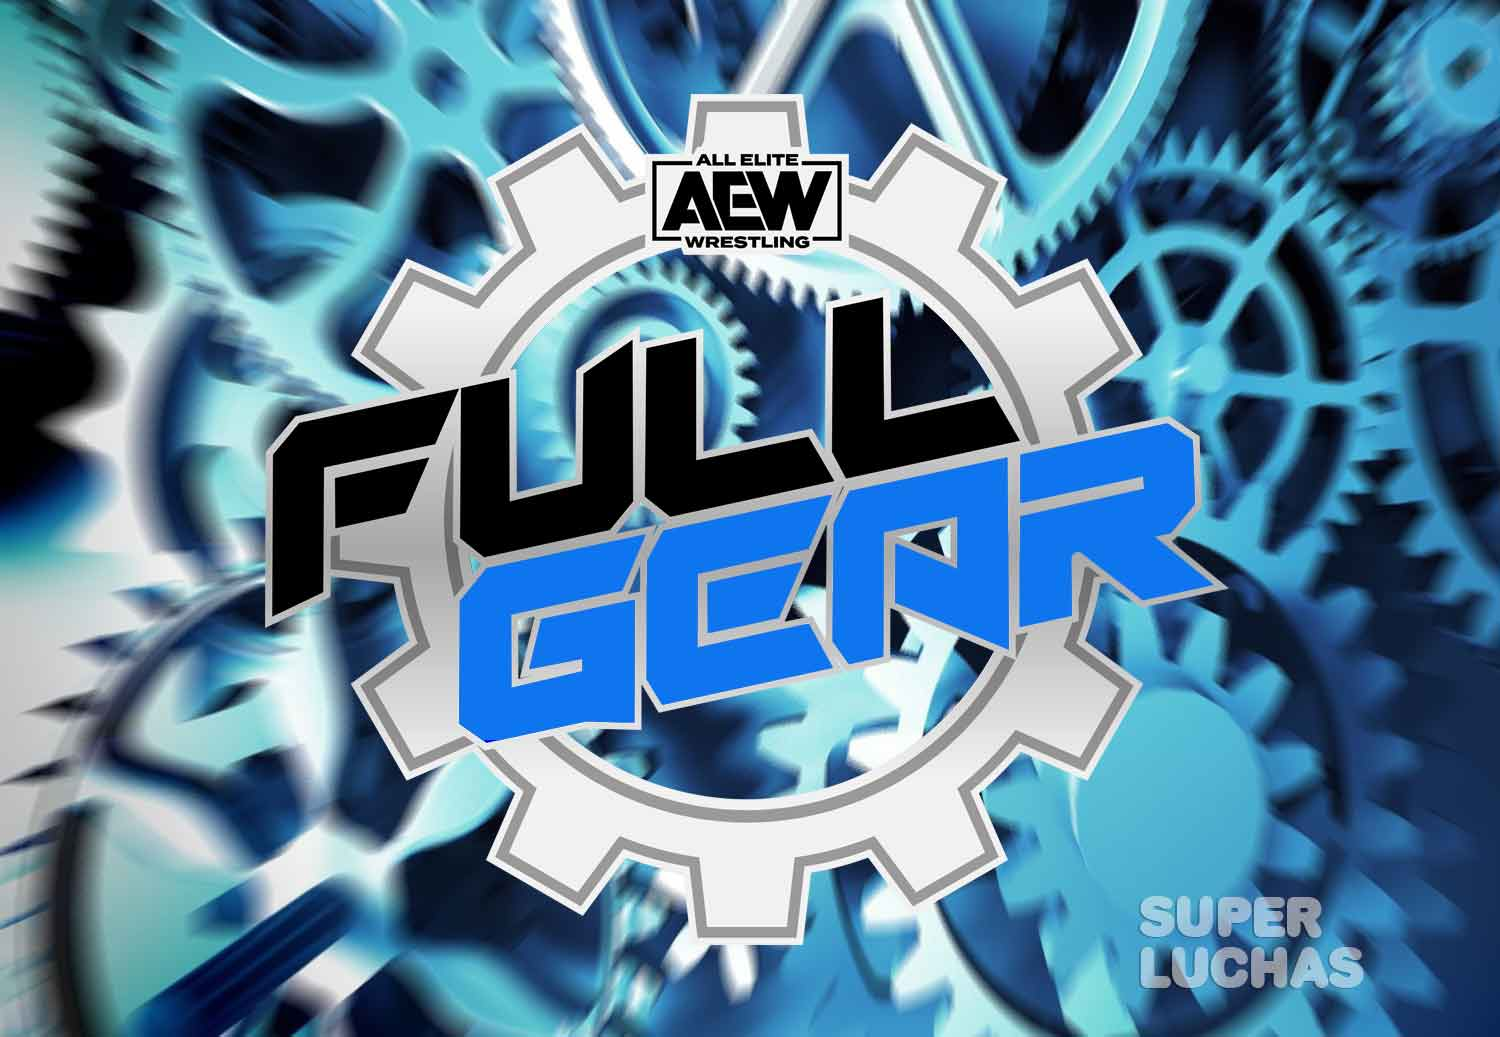 AEW Full Gear logo